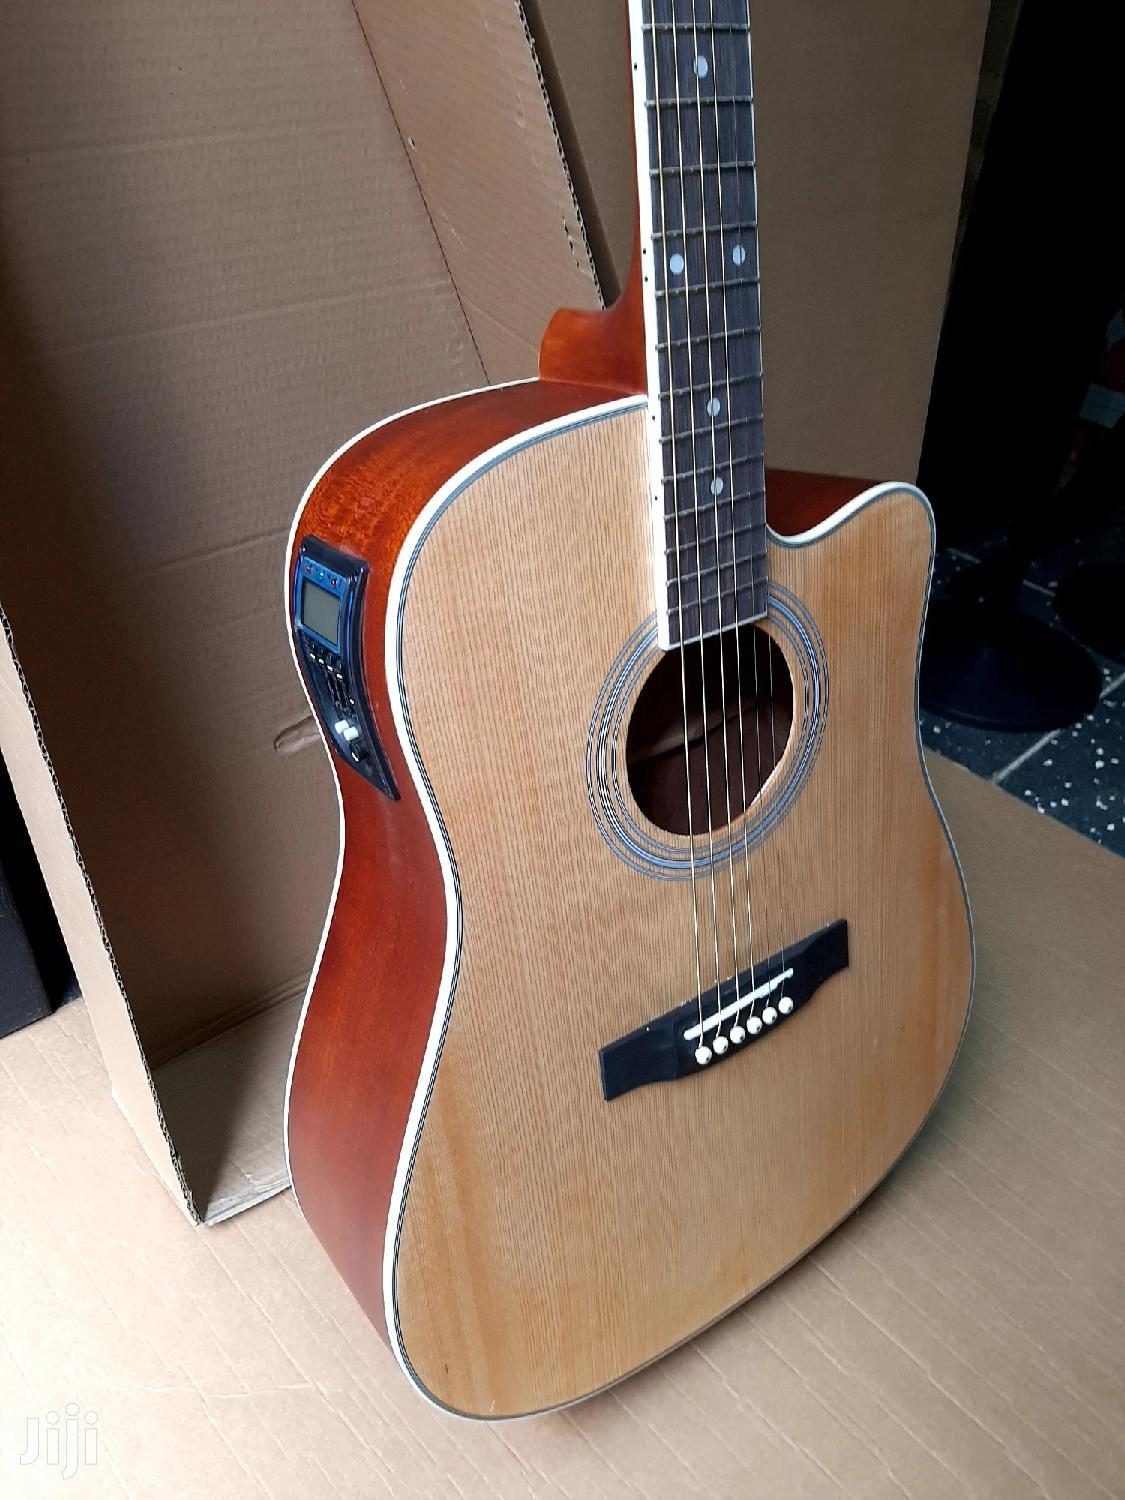 Ebanez Full Size Semi Acoustic Box Guitar With Inbuilt Tuner | Musical Instruments & Gear for sale in Nairobi Central, Nairobi, Kenya